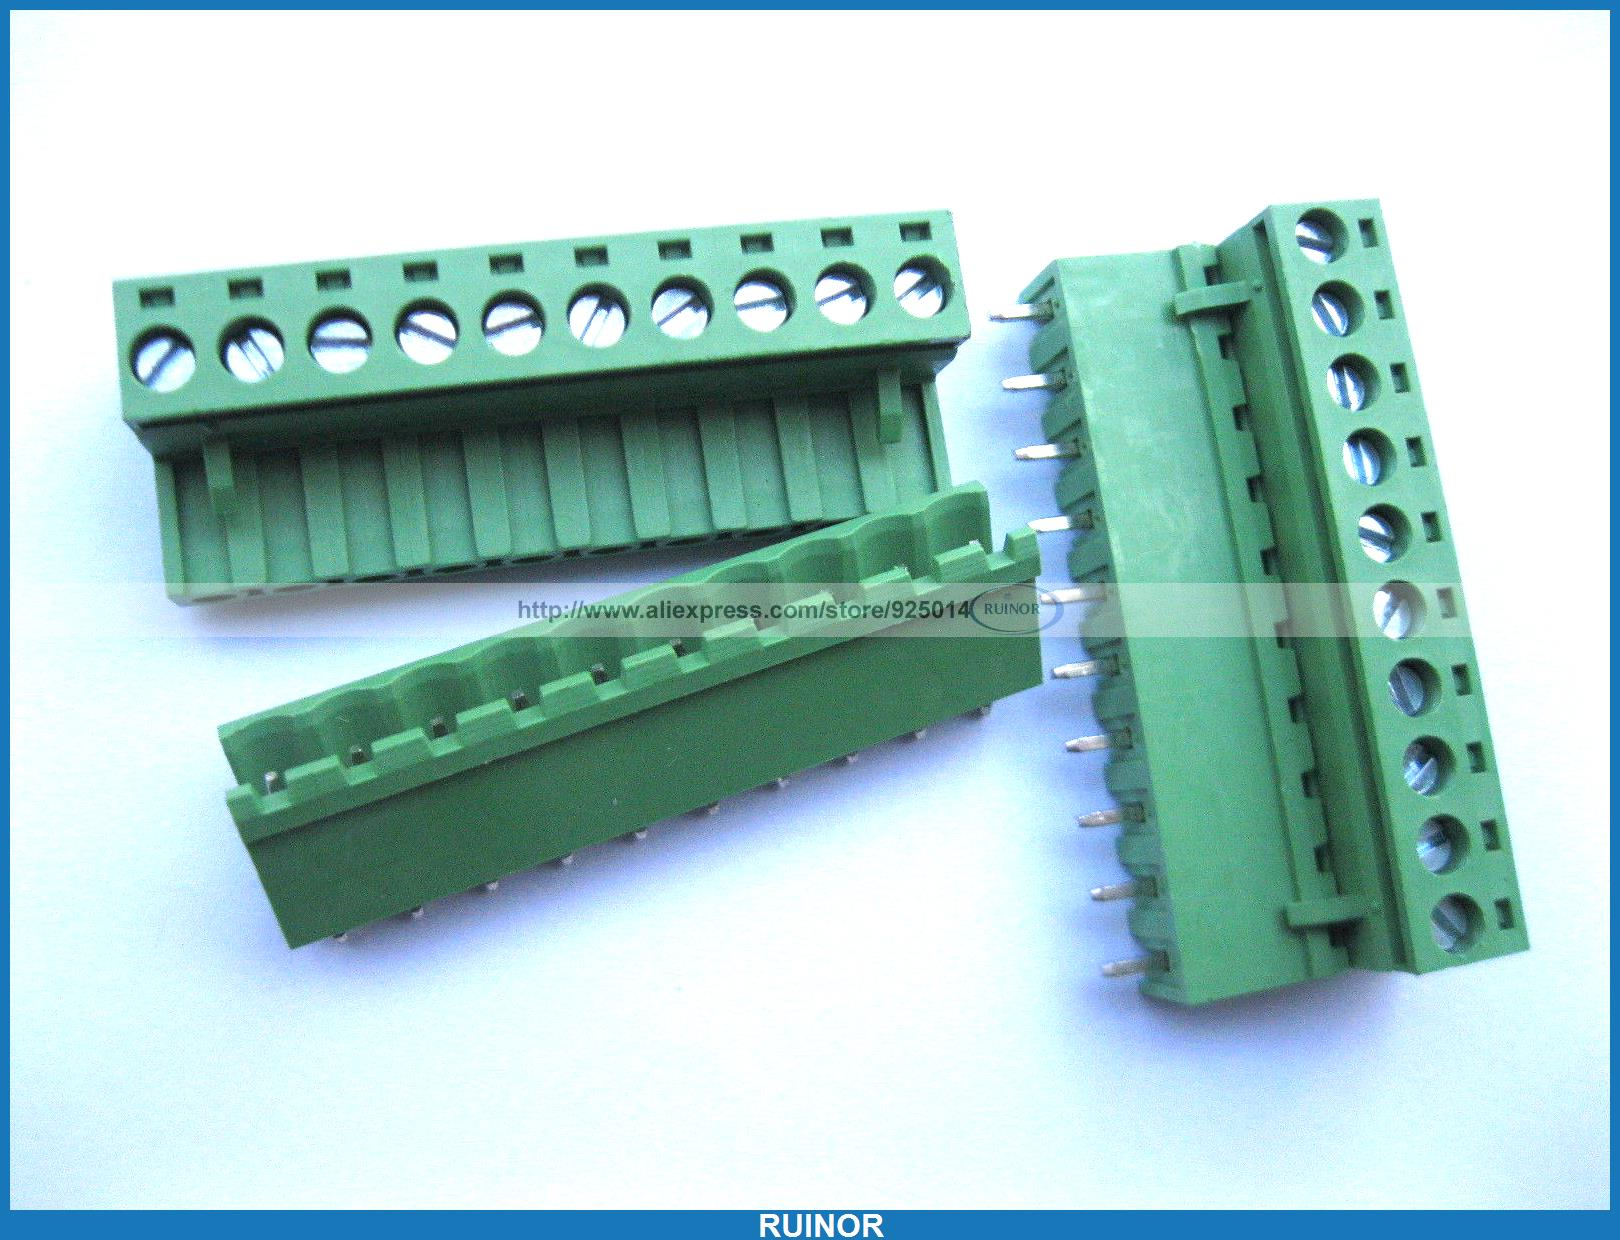 50 Pcs 5 08mm Straight 10 Pin Screw Terminal Block Connector Pluggable Green 30 pcs 5 08mm angle 16 pin screw terminal block connector pluggable type green